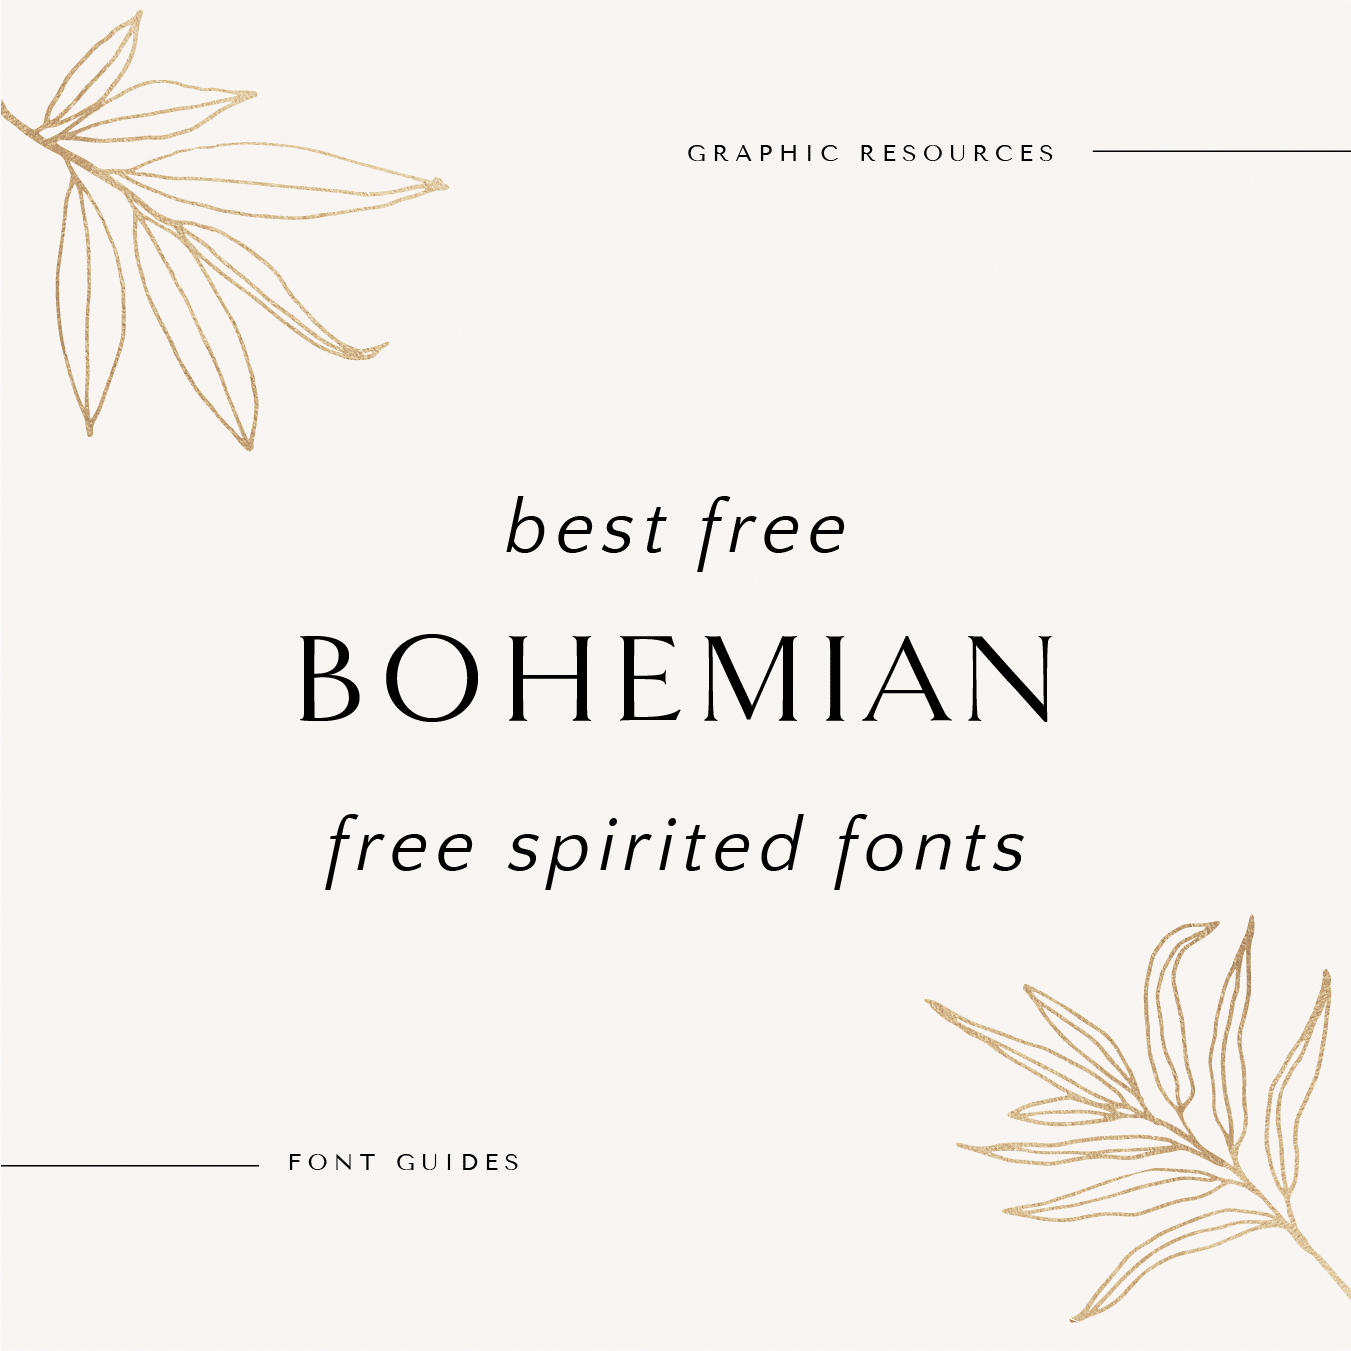 Best Free Bohemian Free Spirited Fonts Wild Side Design Co